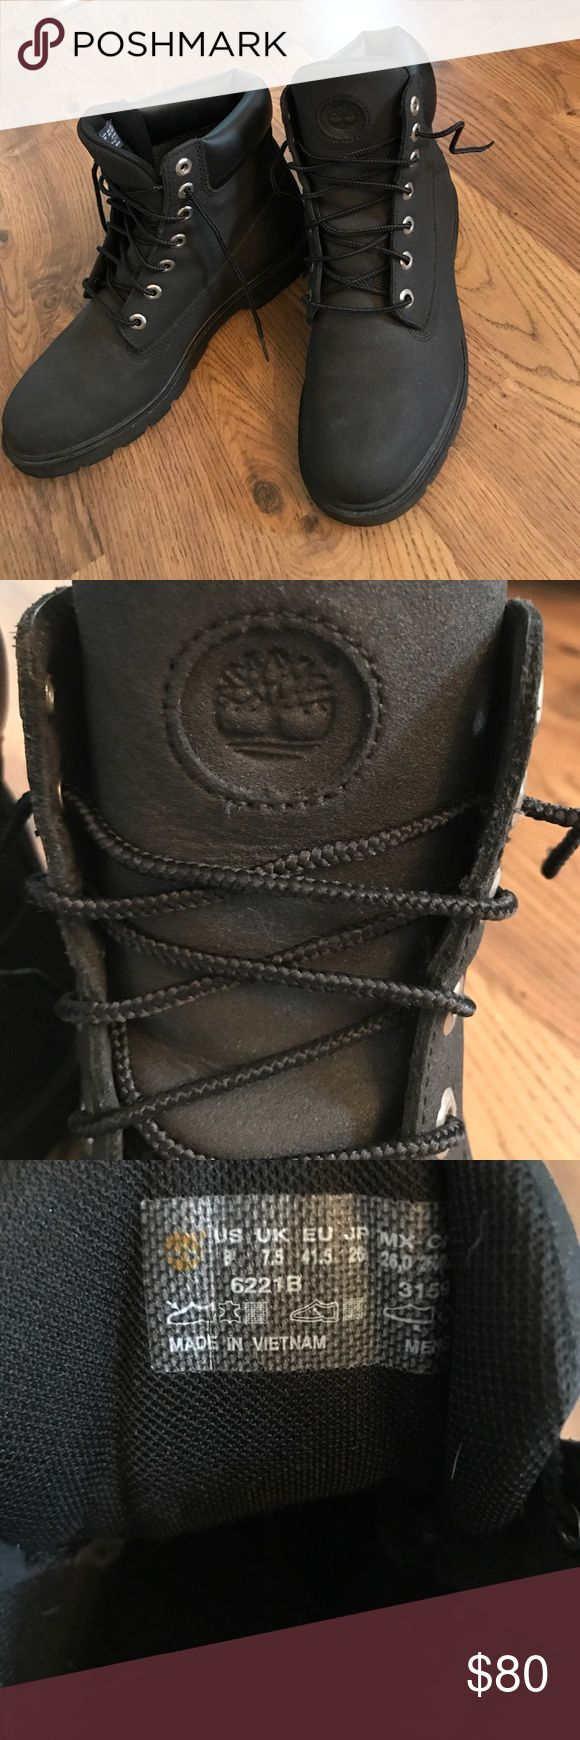 Black Timberland Boots Black timbs worn once but just didn't fit right.. silver metals, size 8 mens boots, great condition! Timberland Shoes Boots